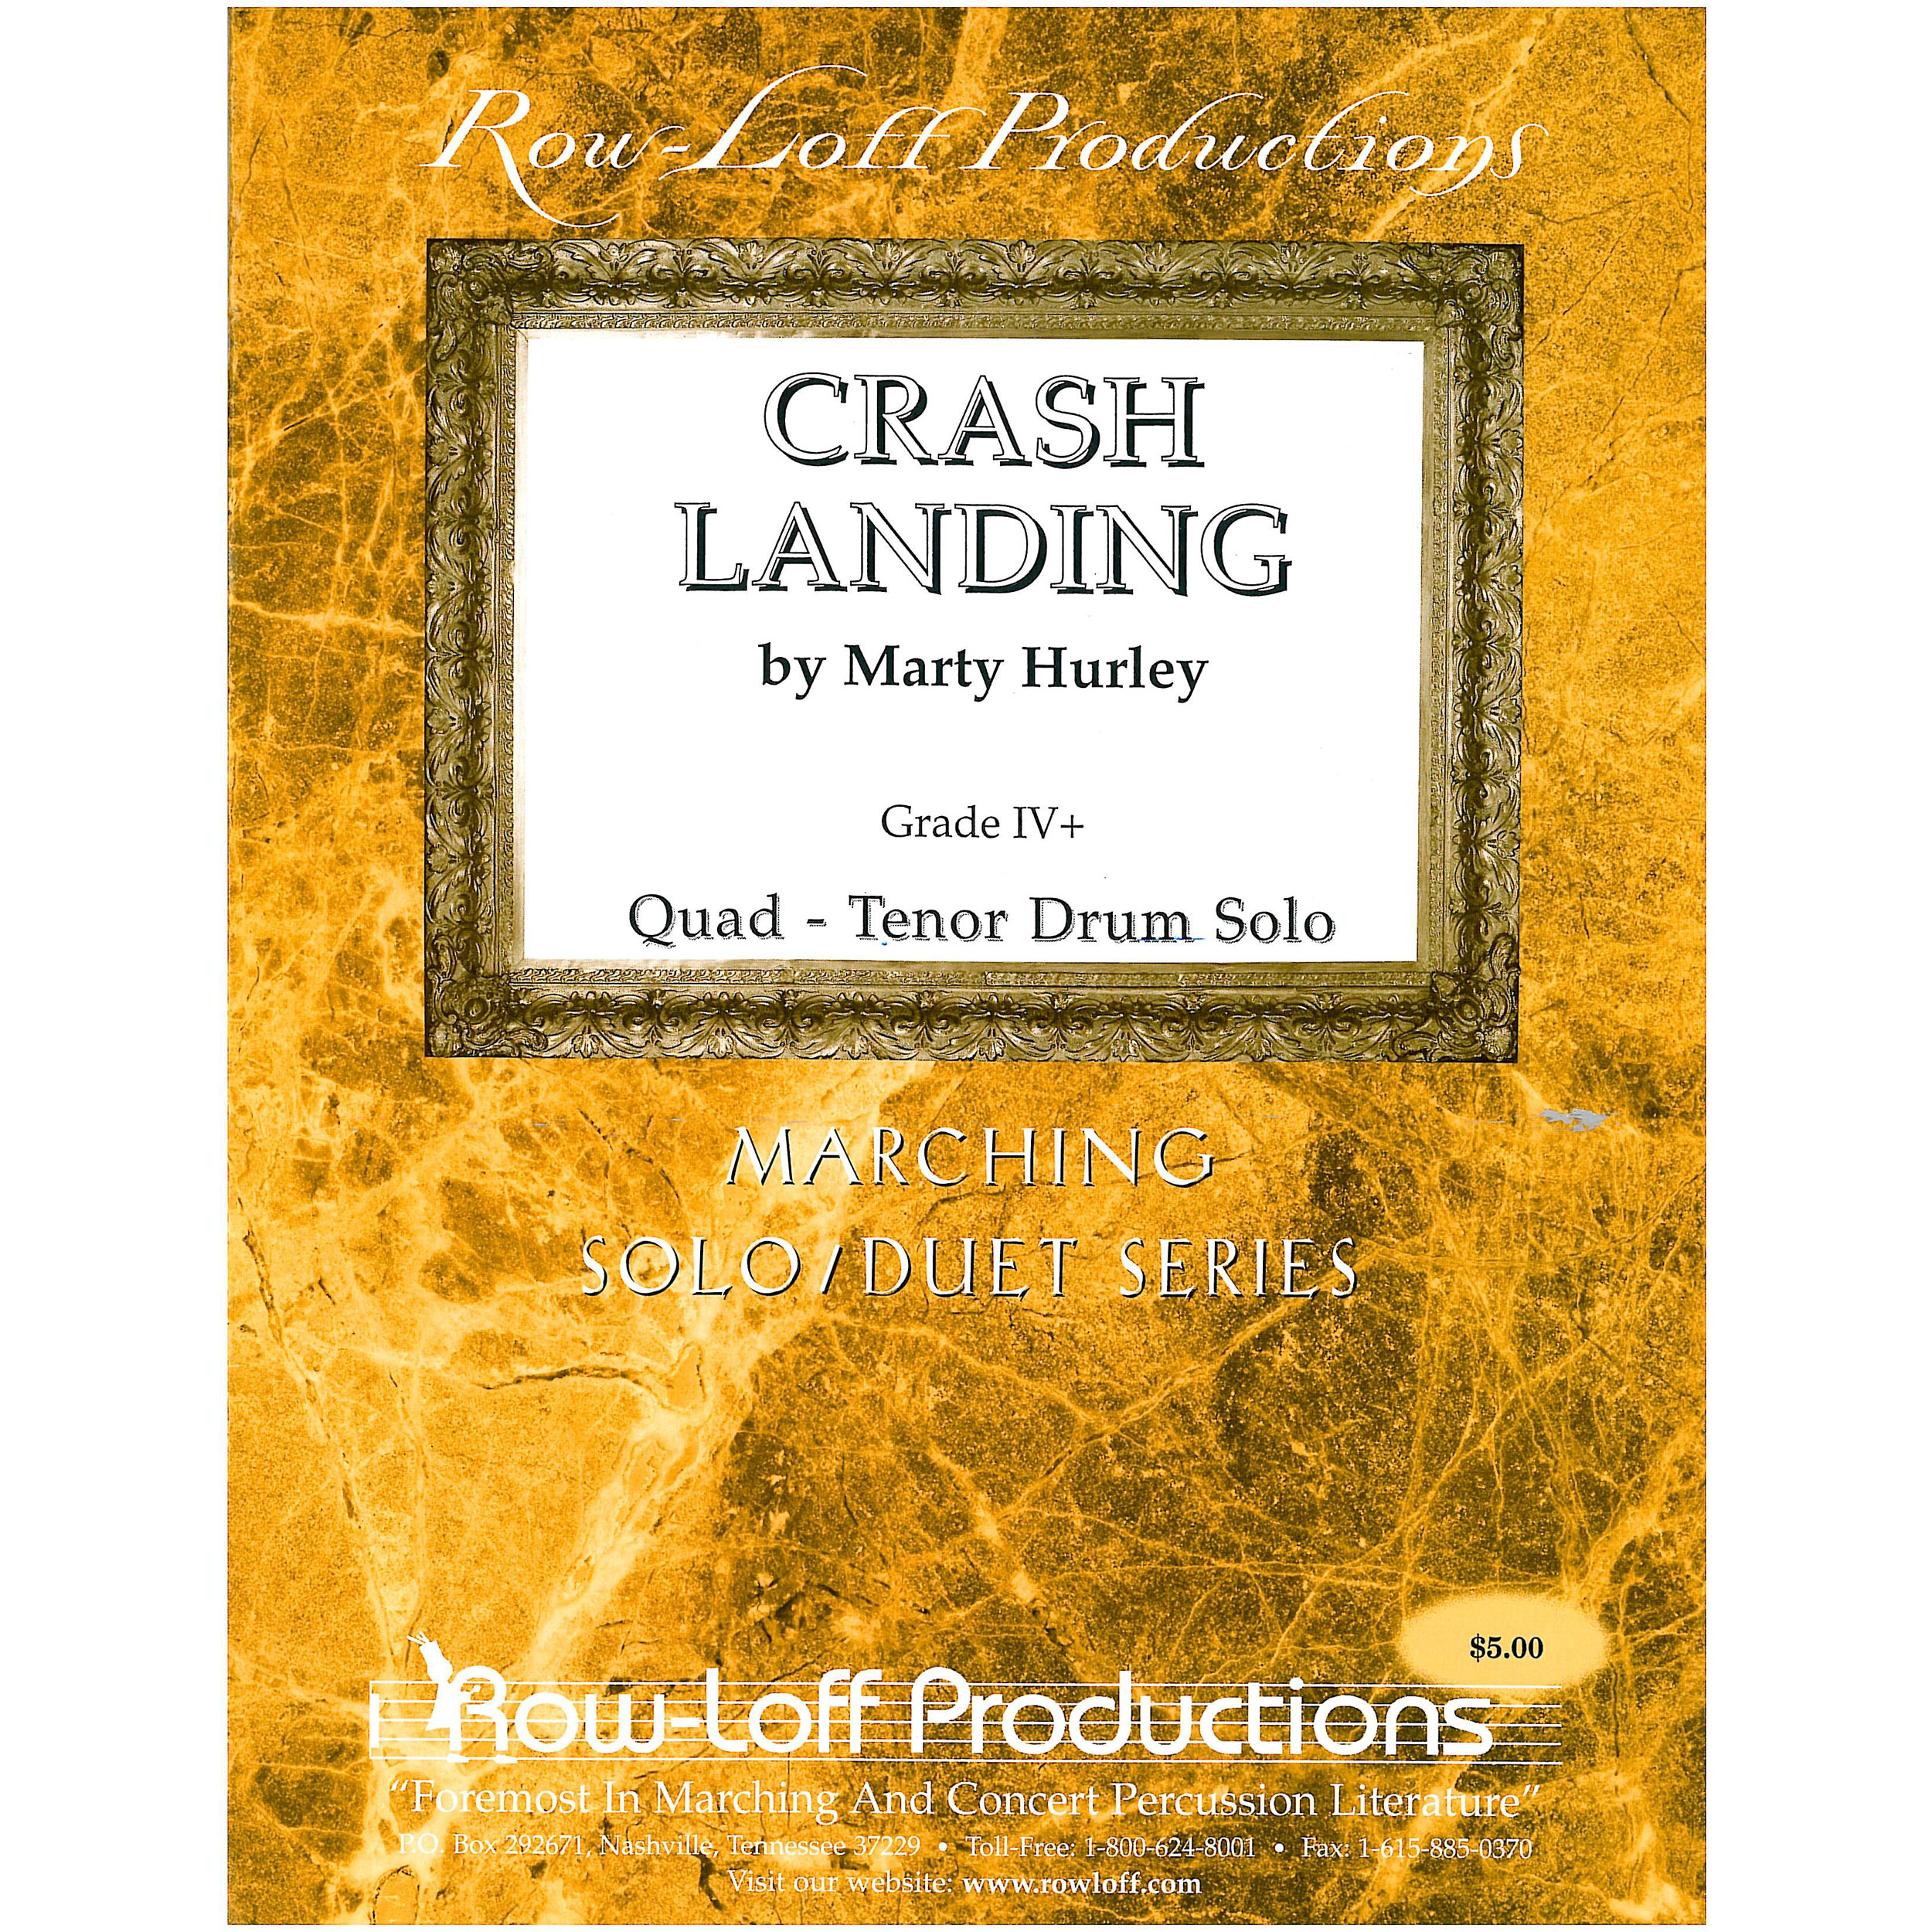 Crash Landing: A Tenor Drum Solo by Marty Hurley